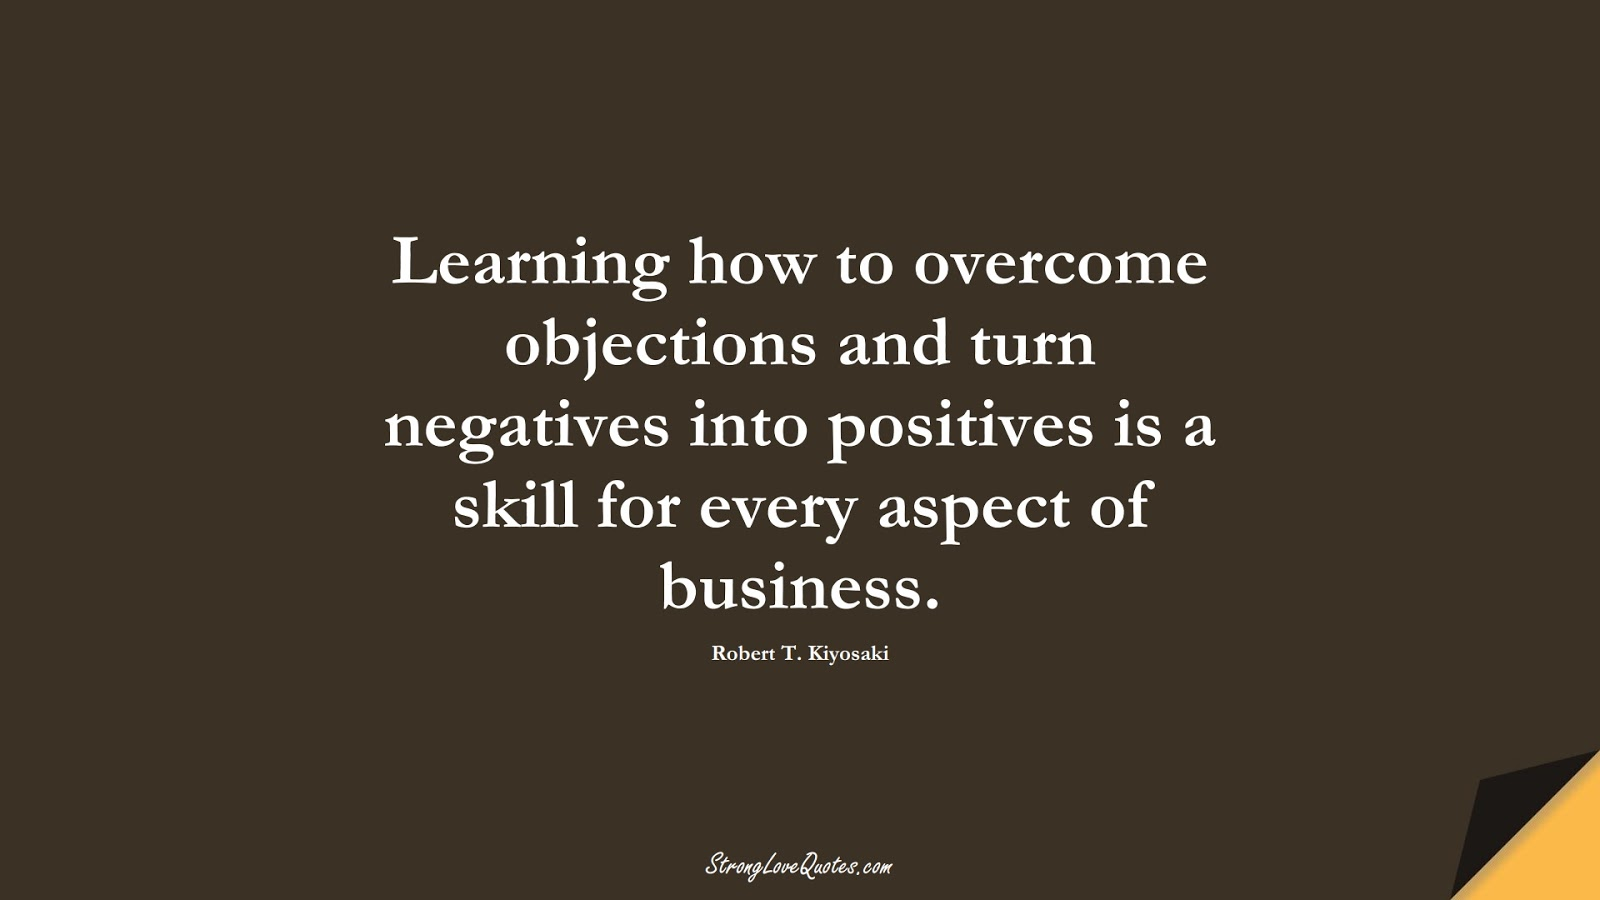 Learning how to overcome objections and turn negatives into positives is a skill for every aspect of business. (Robert T. Kiyosaki);  #LearningQuotes